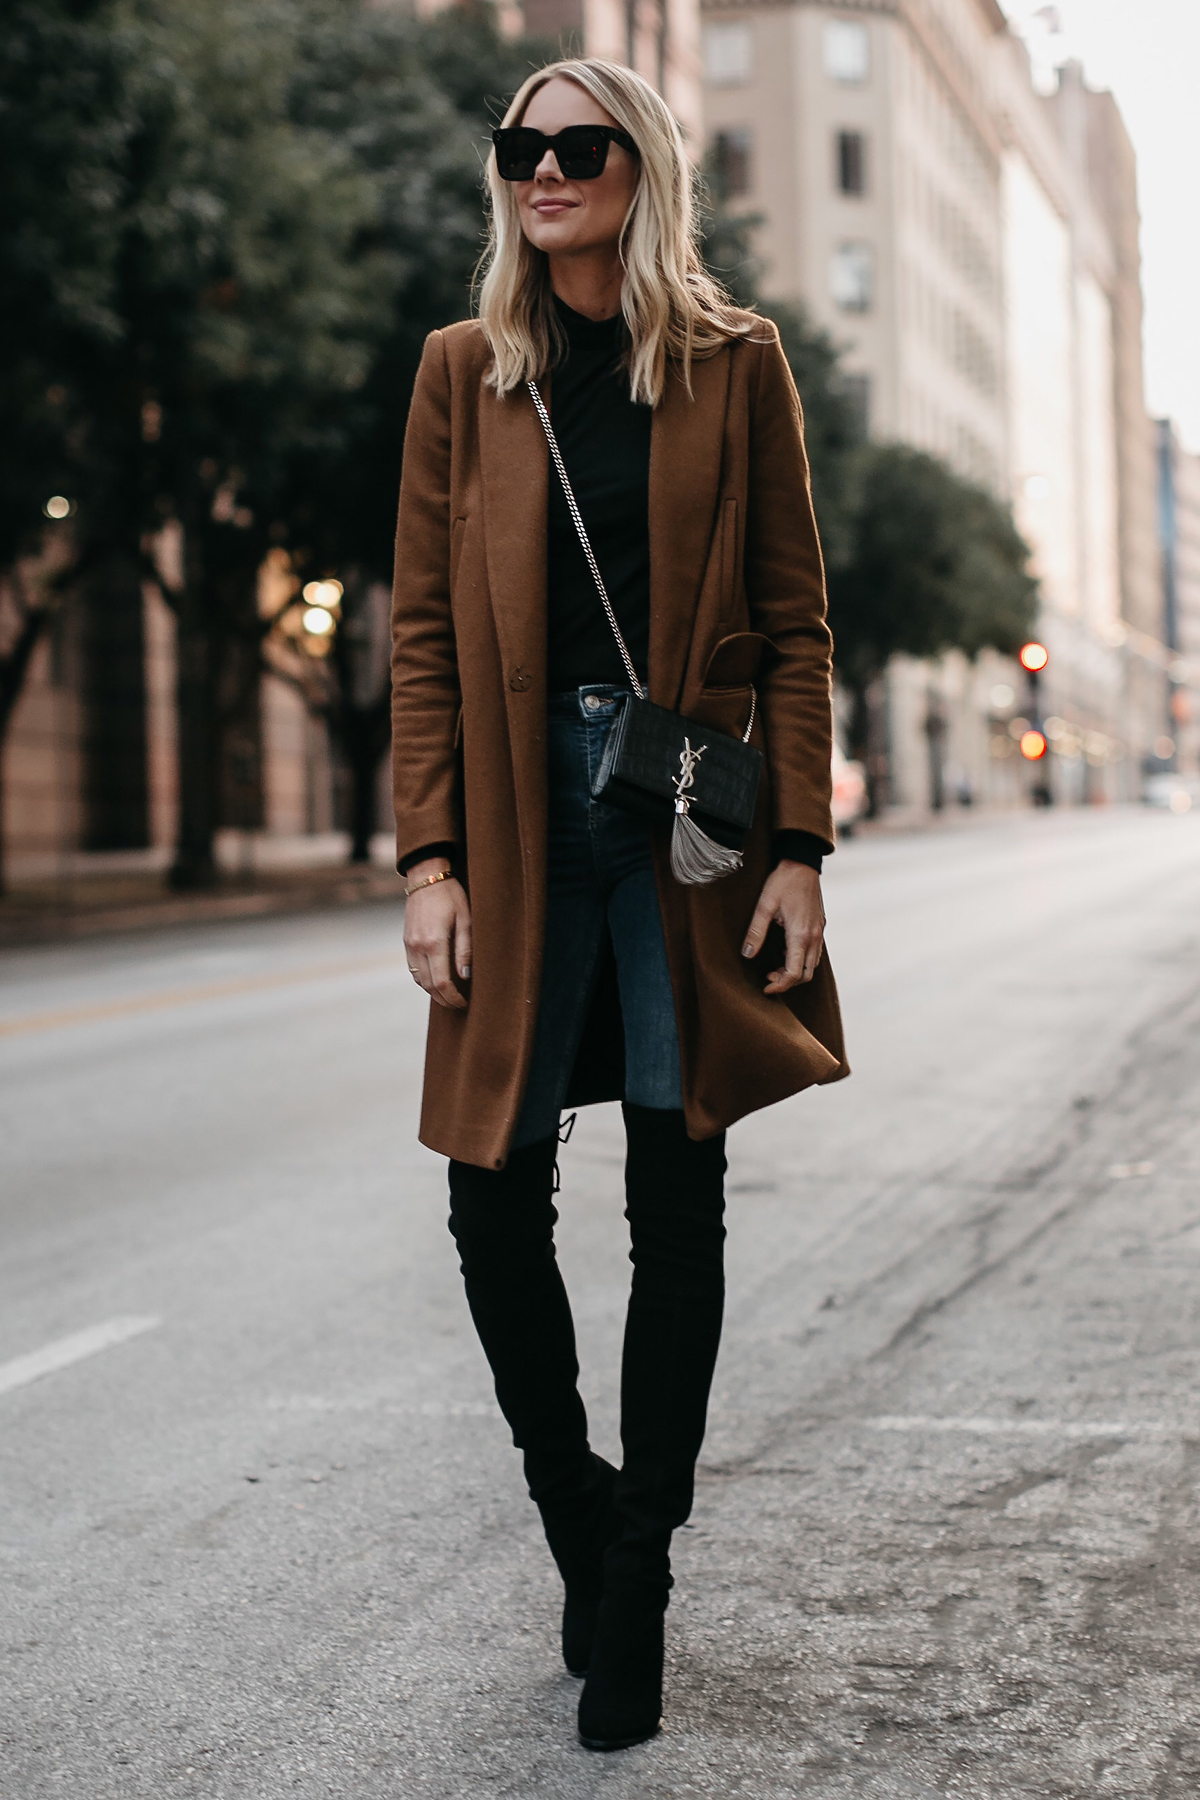 Blonde Woman Wearing Camel Wool Coat Denim Skinny Jeans Stuart Weitzman Black Over the Knee Boots Saint Laurent Crossbody Handbag Fashion Jackson Dallas Blogger Fashion Blogger Street Style